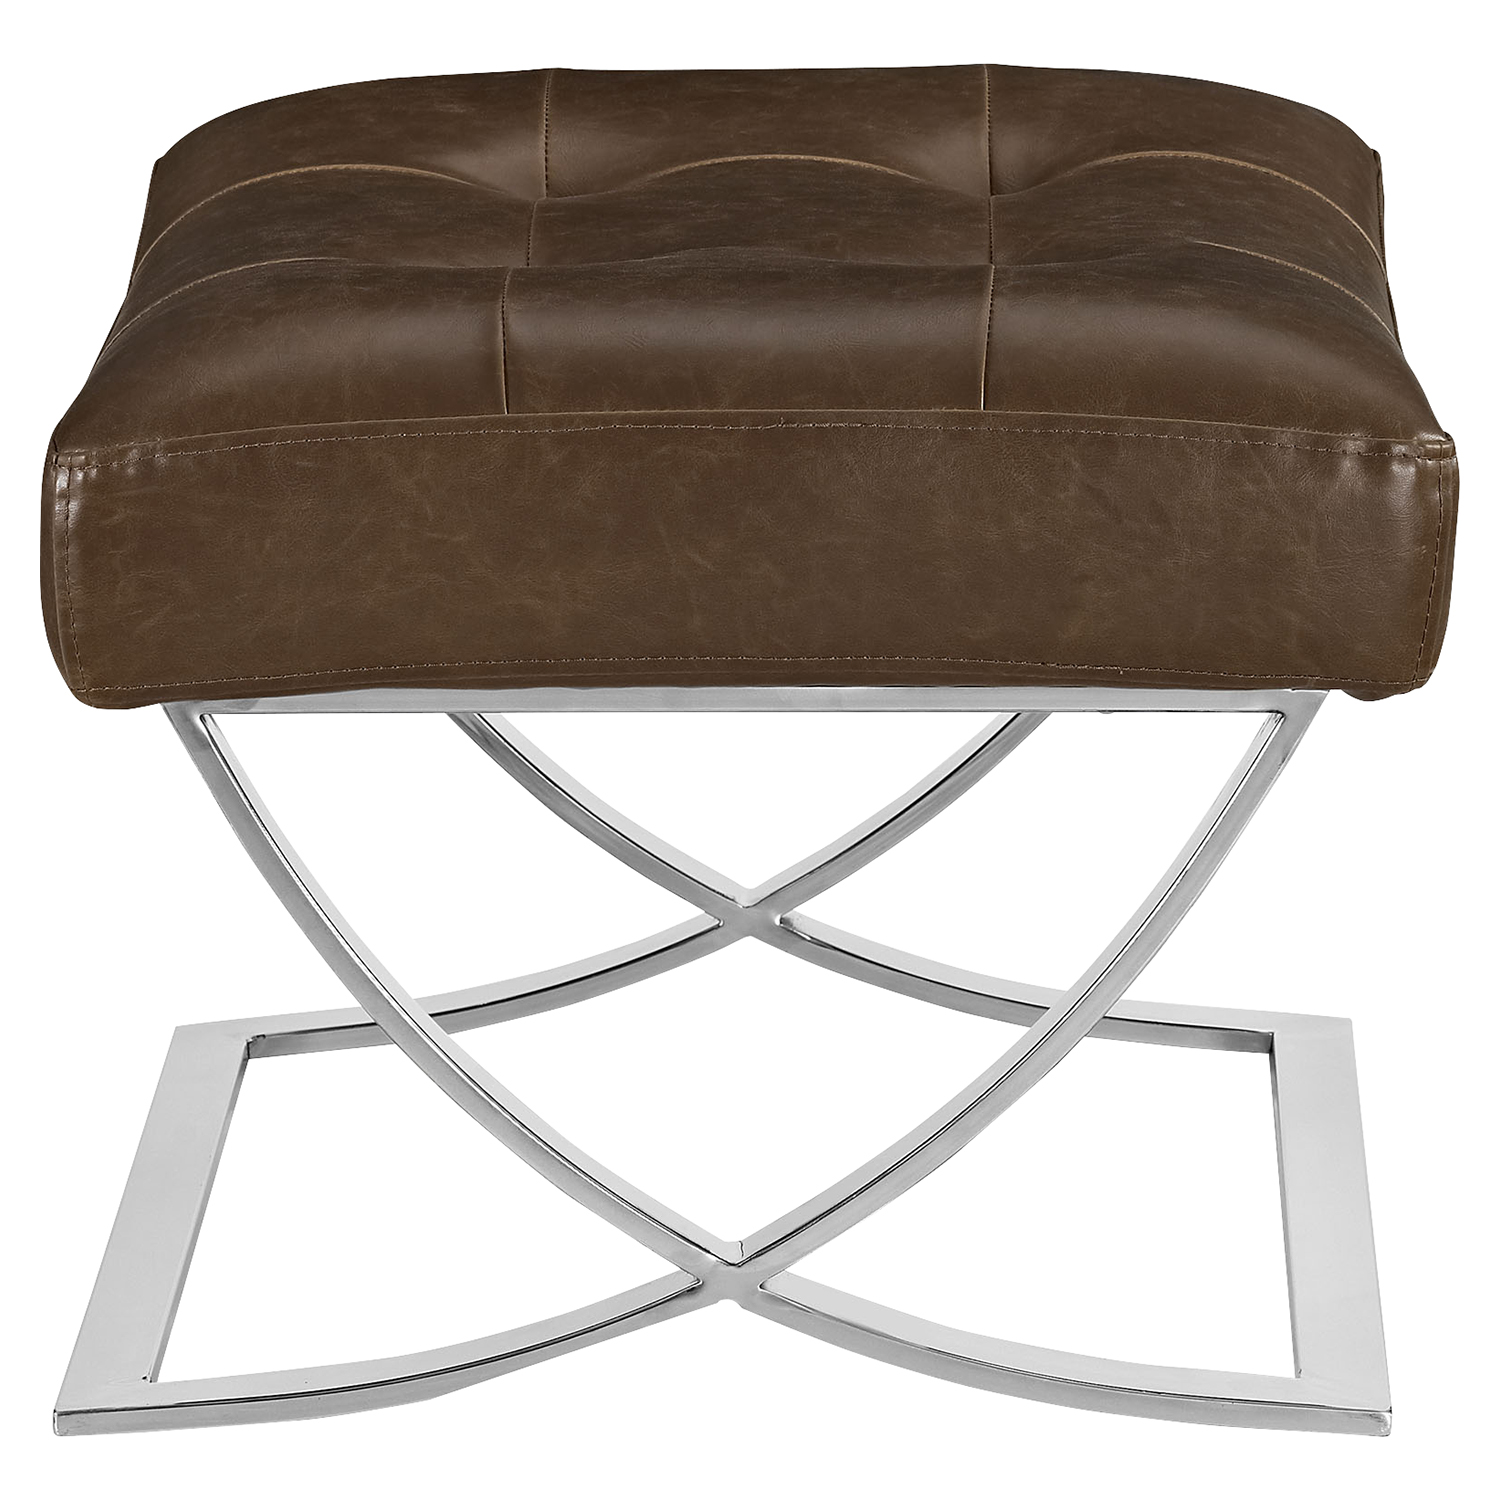 Slope Leatherette Ottoman - Tufted, Brown - EEI-2078-BRN